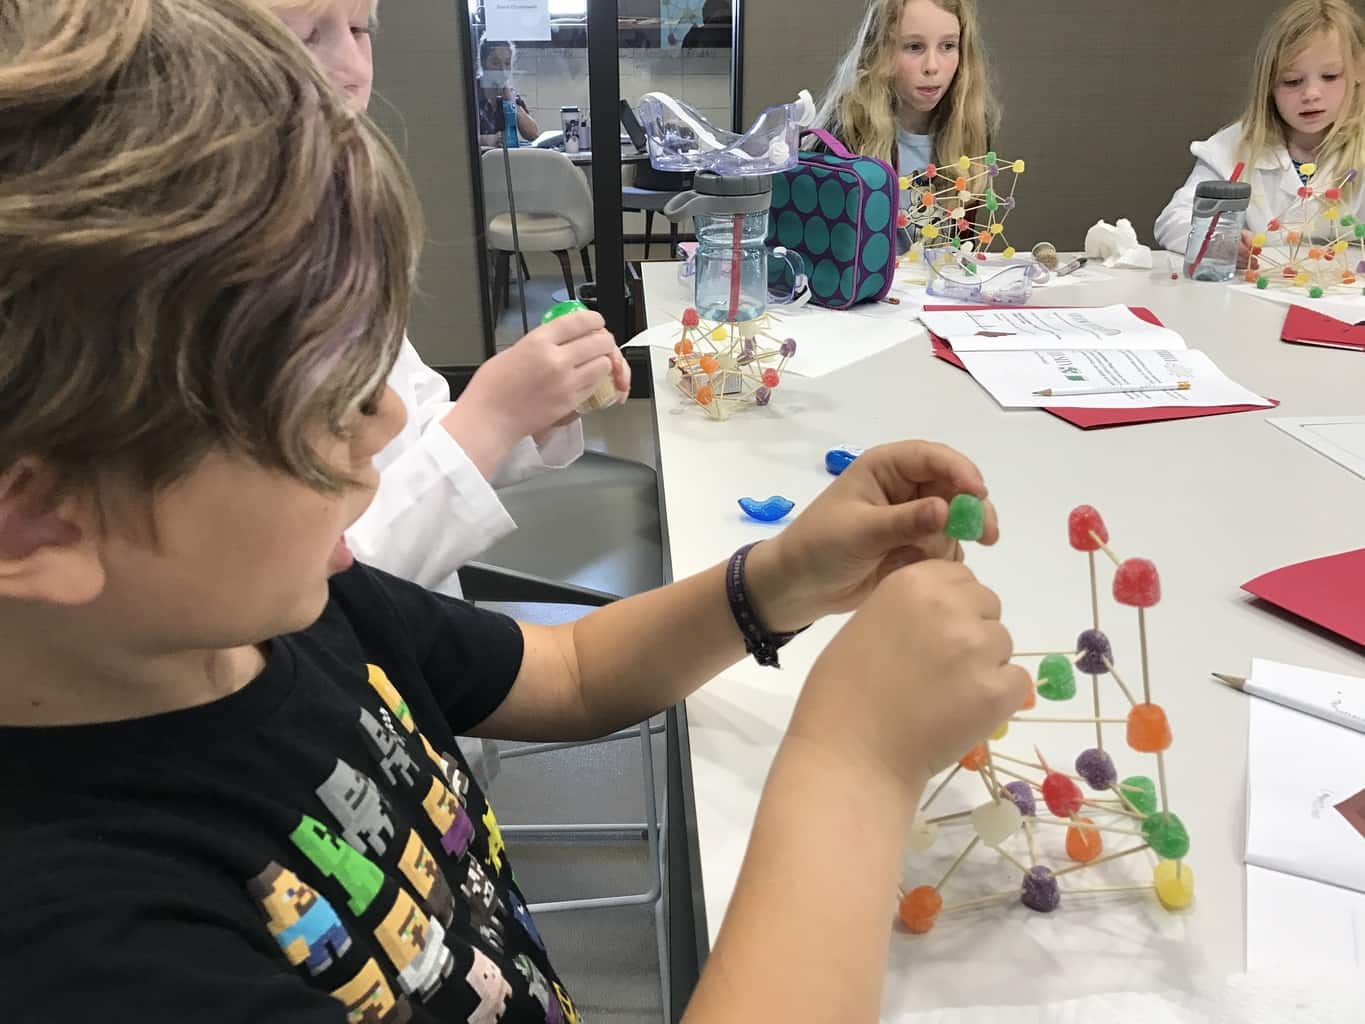 At The LOFT Academy in El Segundo, no two days are alike! In fact, quite the contrary. The LOFT Academy's summer camps are designed to be 'hands-on' and tailored around the unique individual gifts of your child. Learn how to sign your child up today!